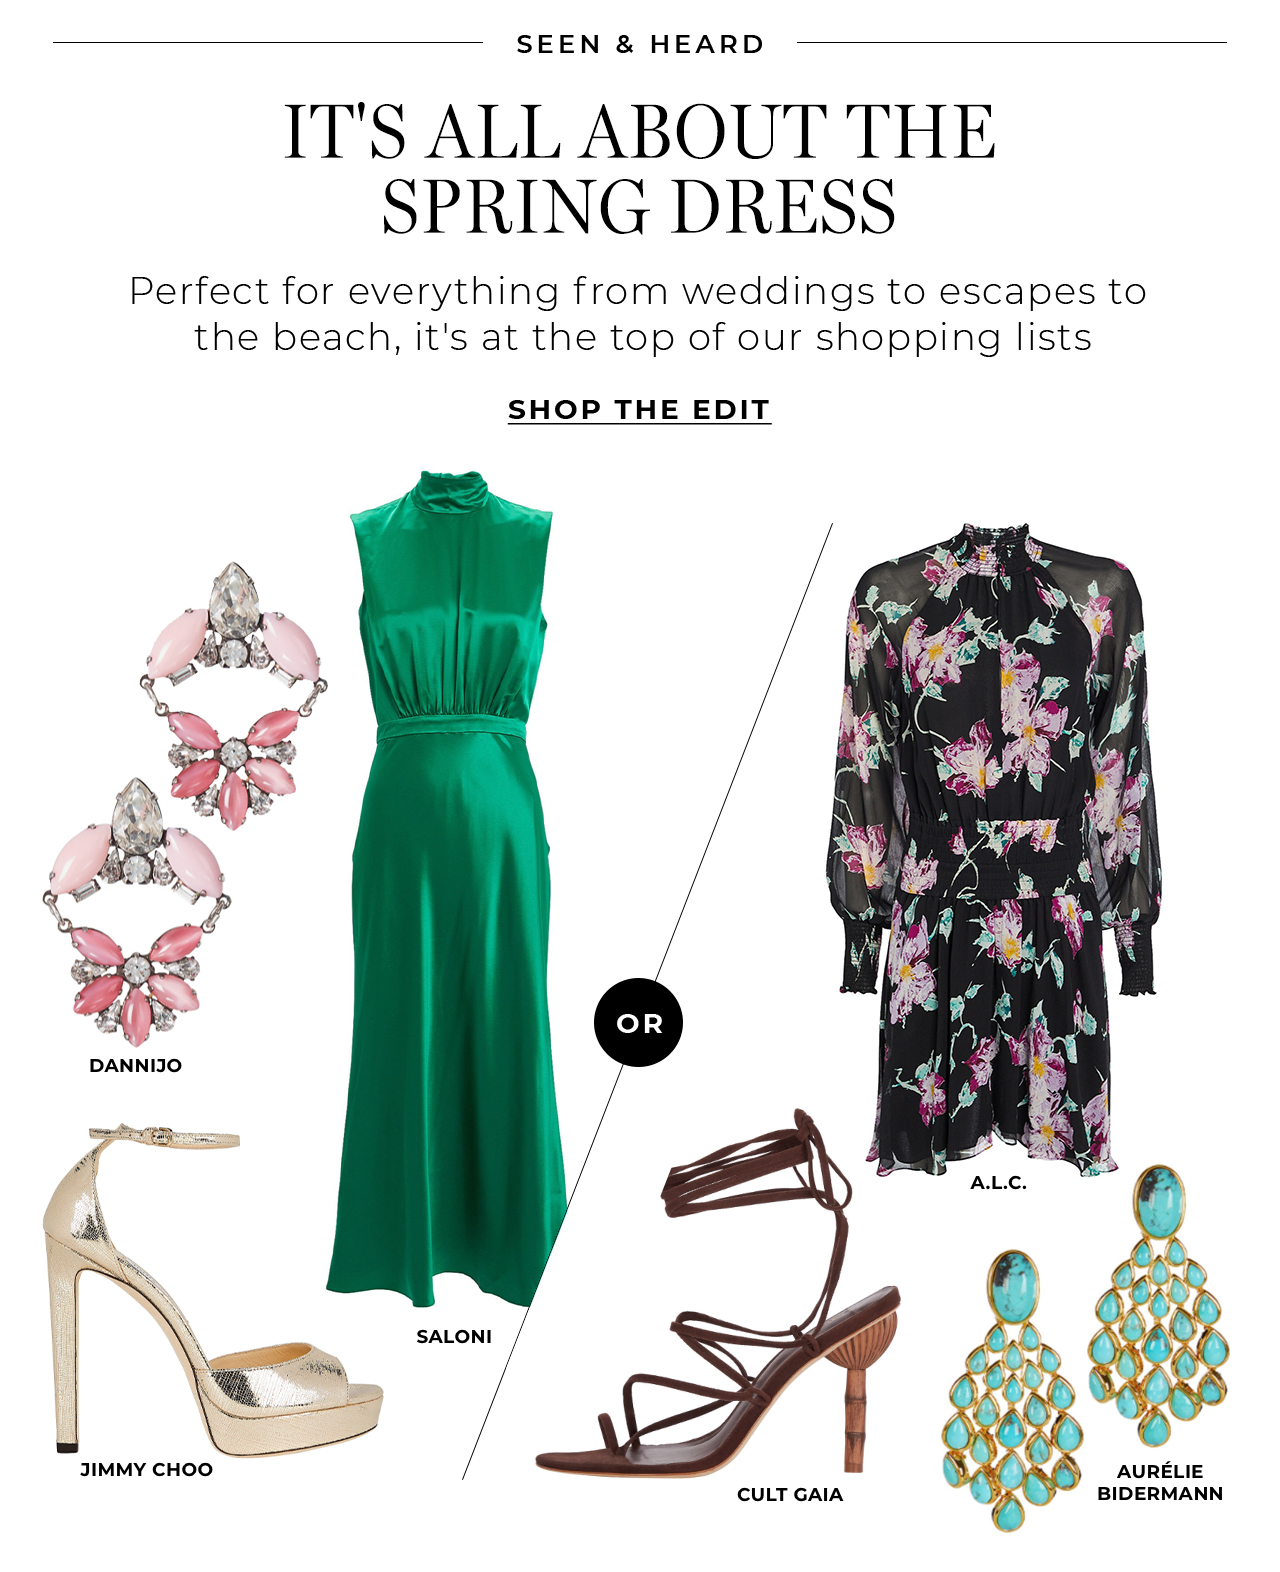 It's all about the spring dress